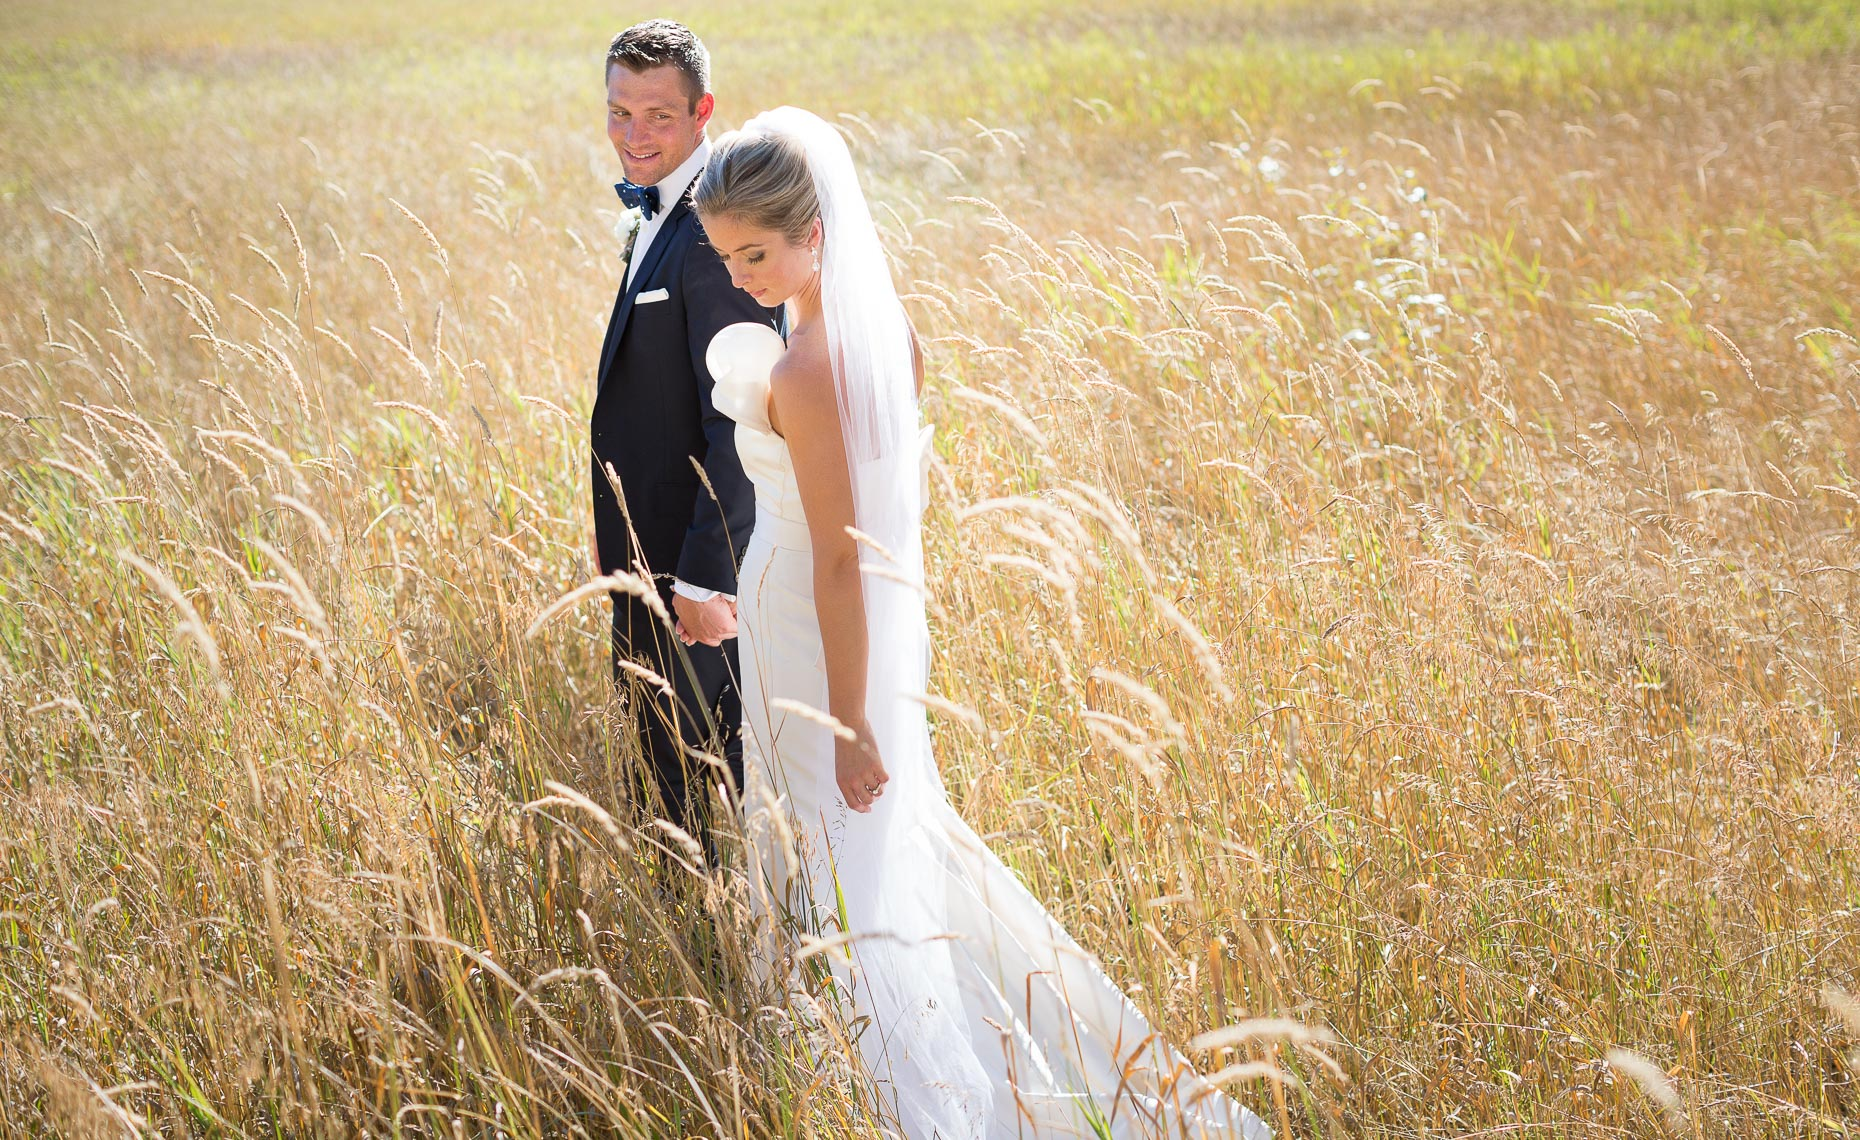 Stylish wedding couple walk in a field in Whistler summer wedding